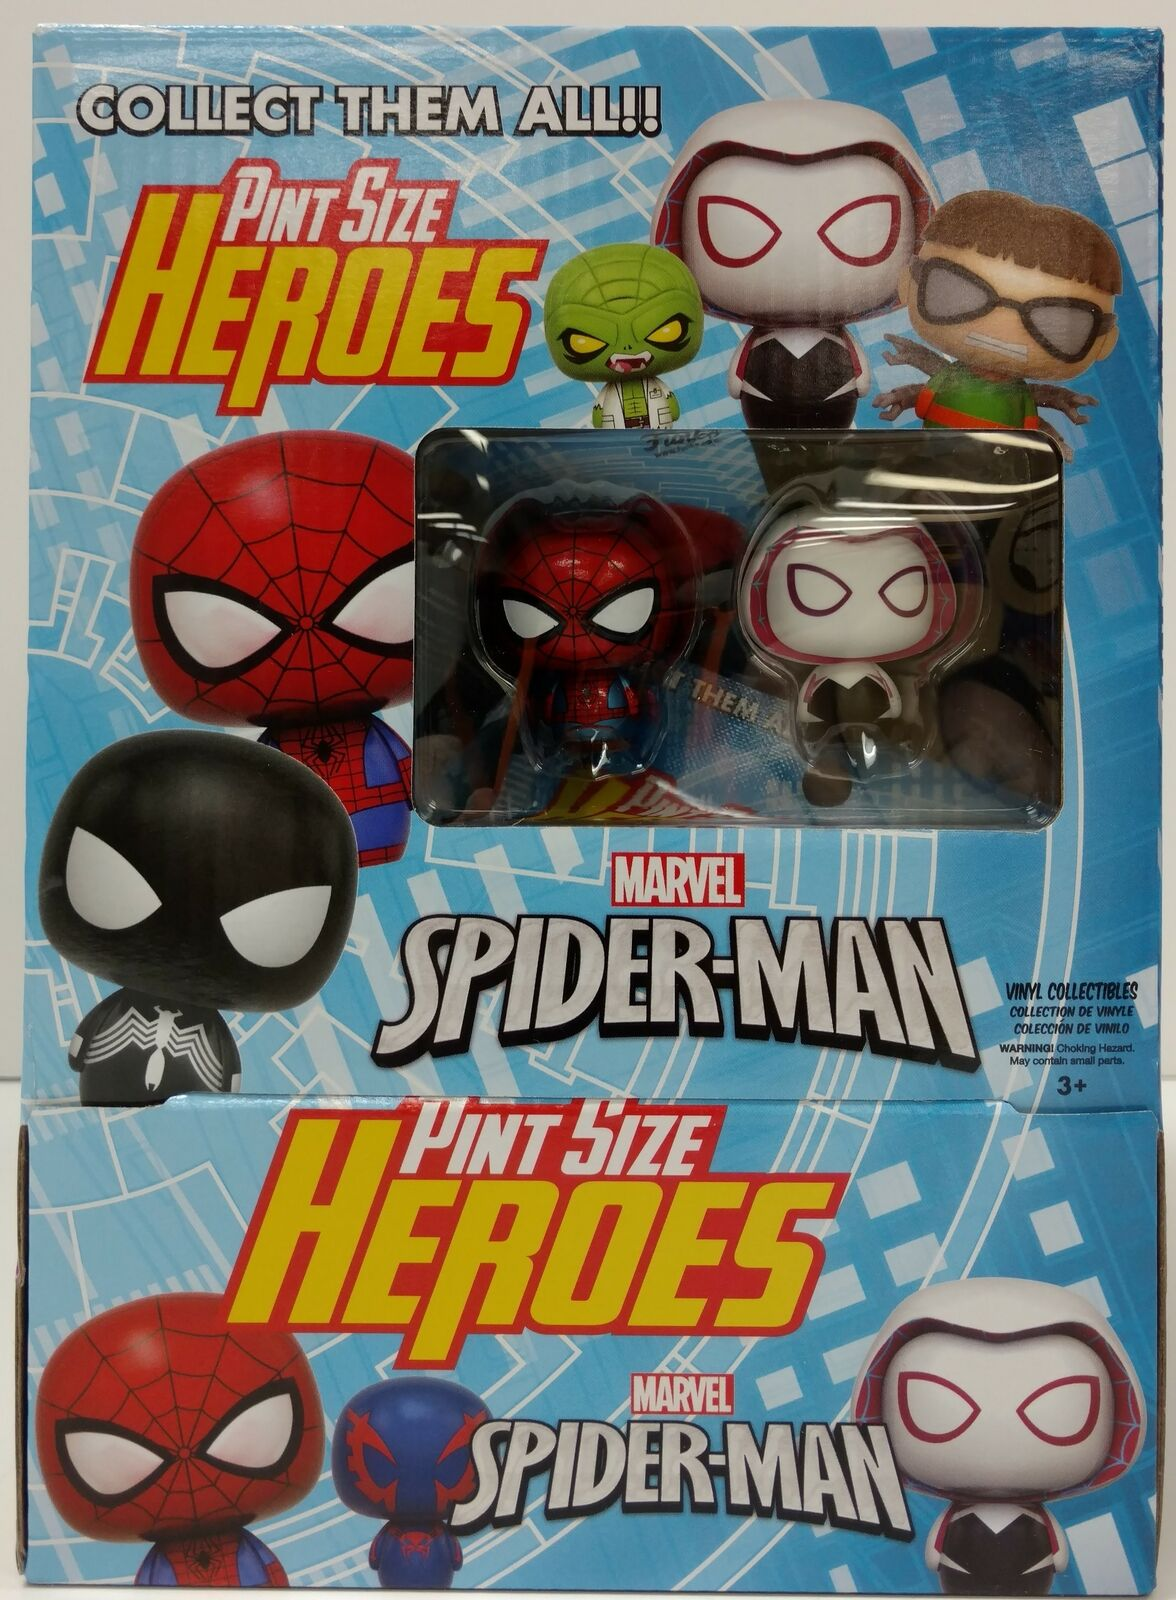 Diverdeimentoko Pint Dimensione Heroes Marvel  Spider-uomo Sealed scatola  outlet